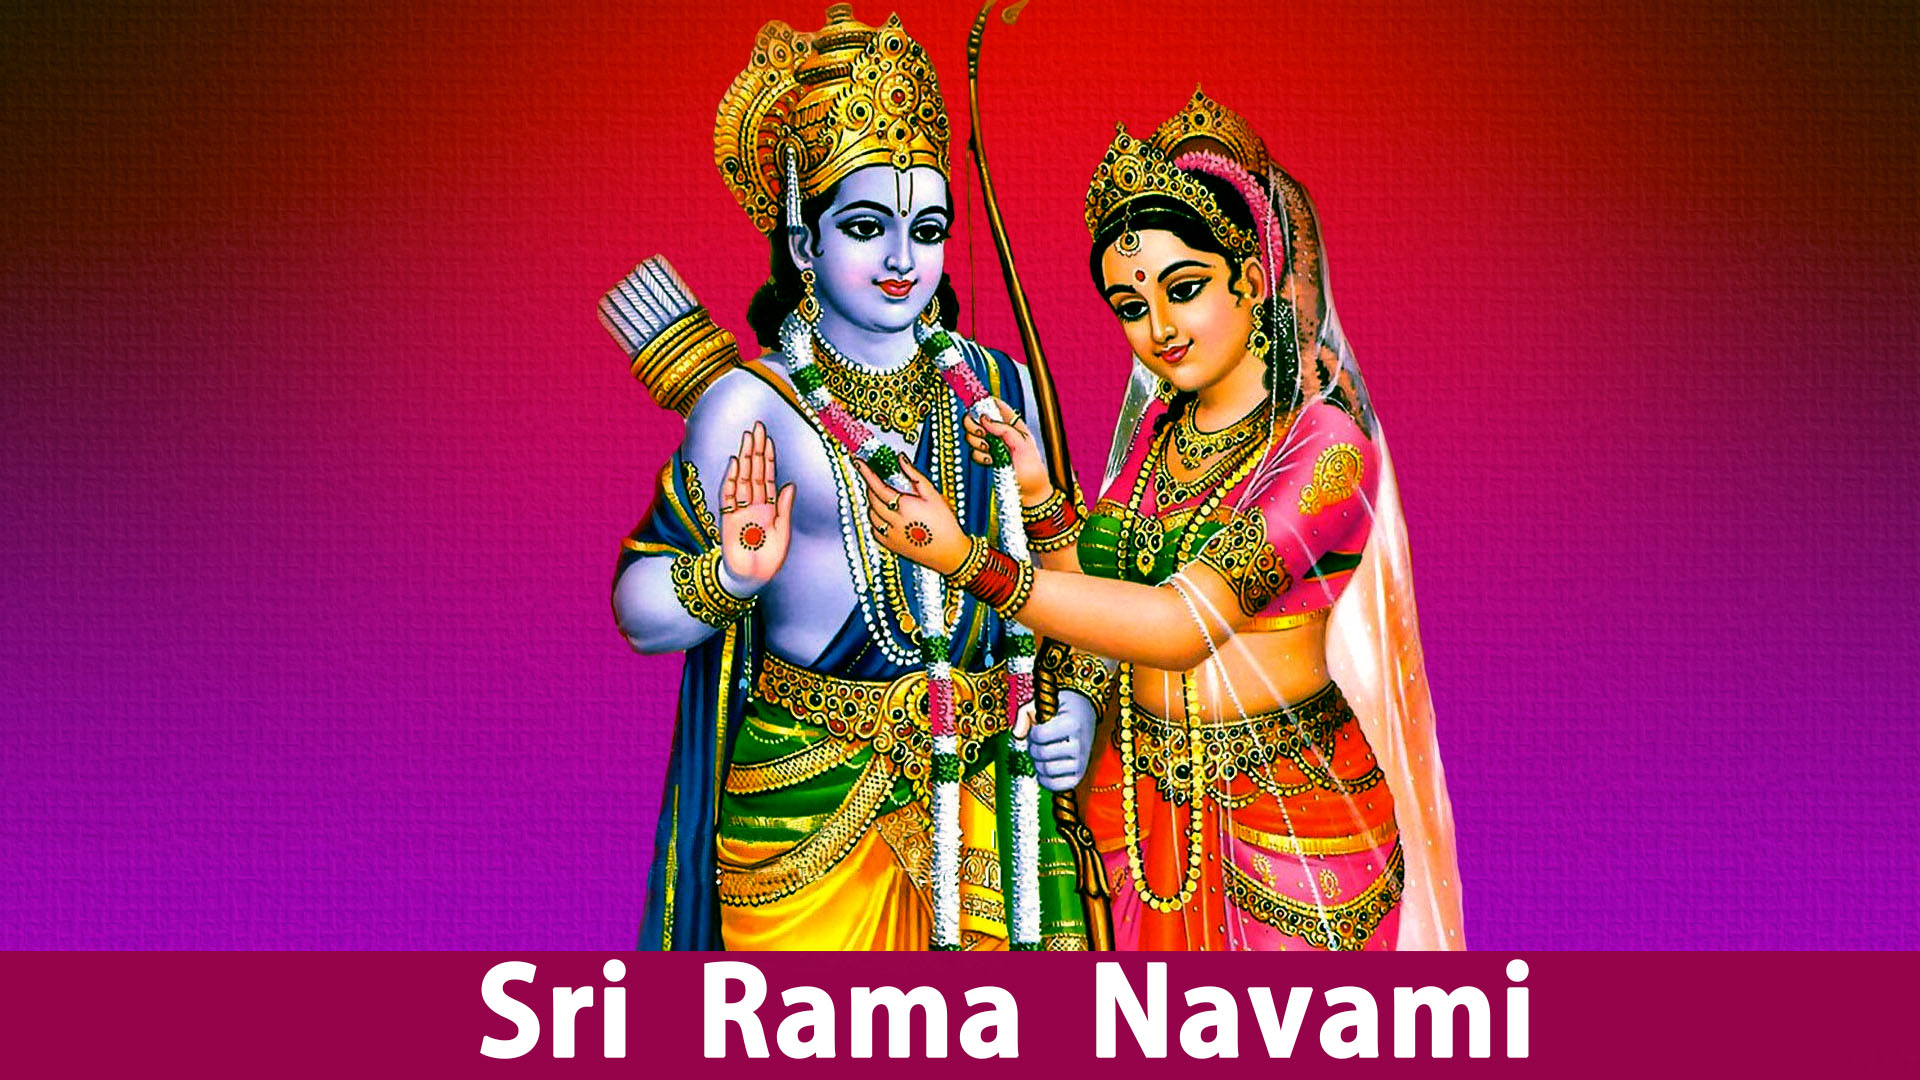 Ram Navami Hd Wallpaper